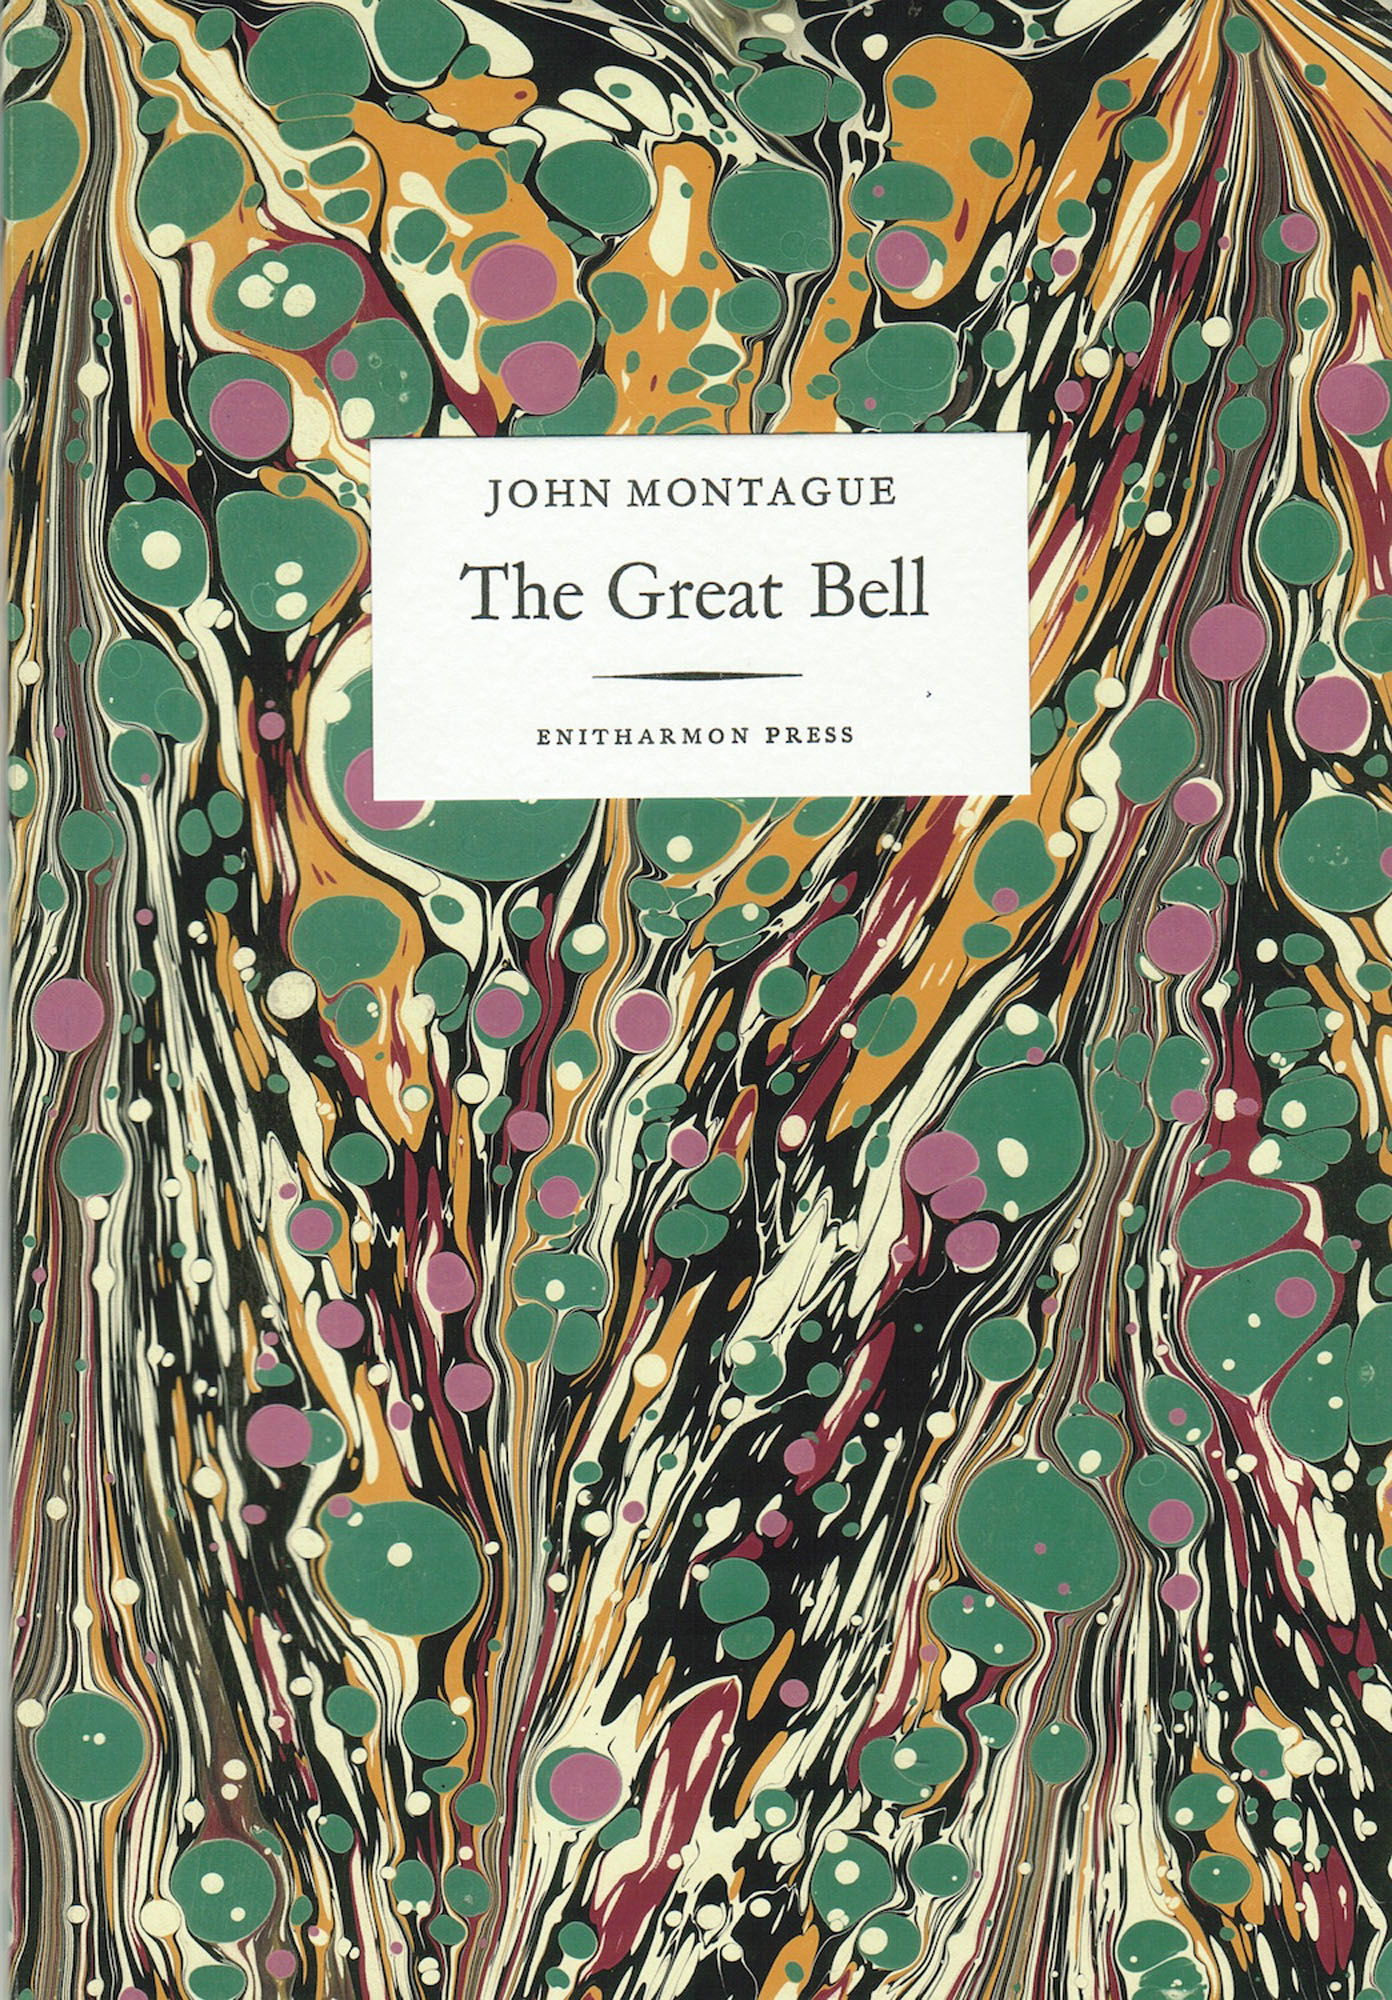 The Great Bell